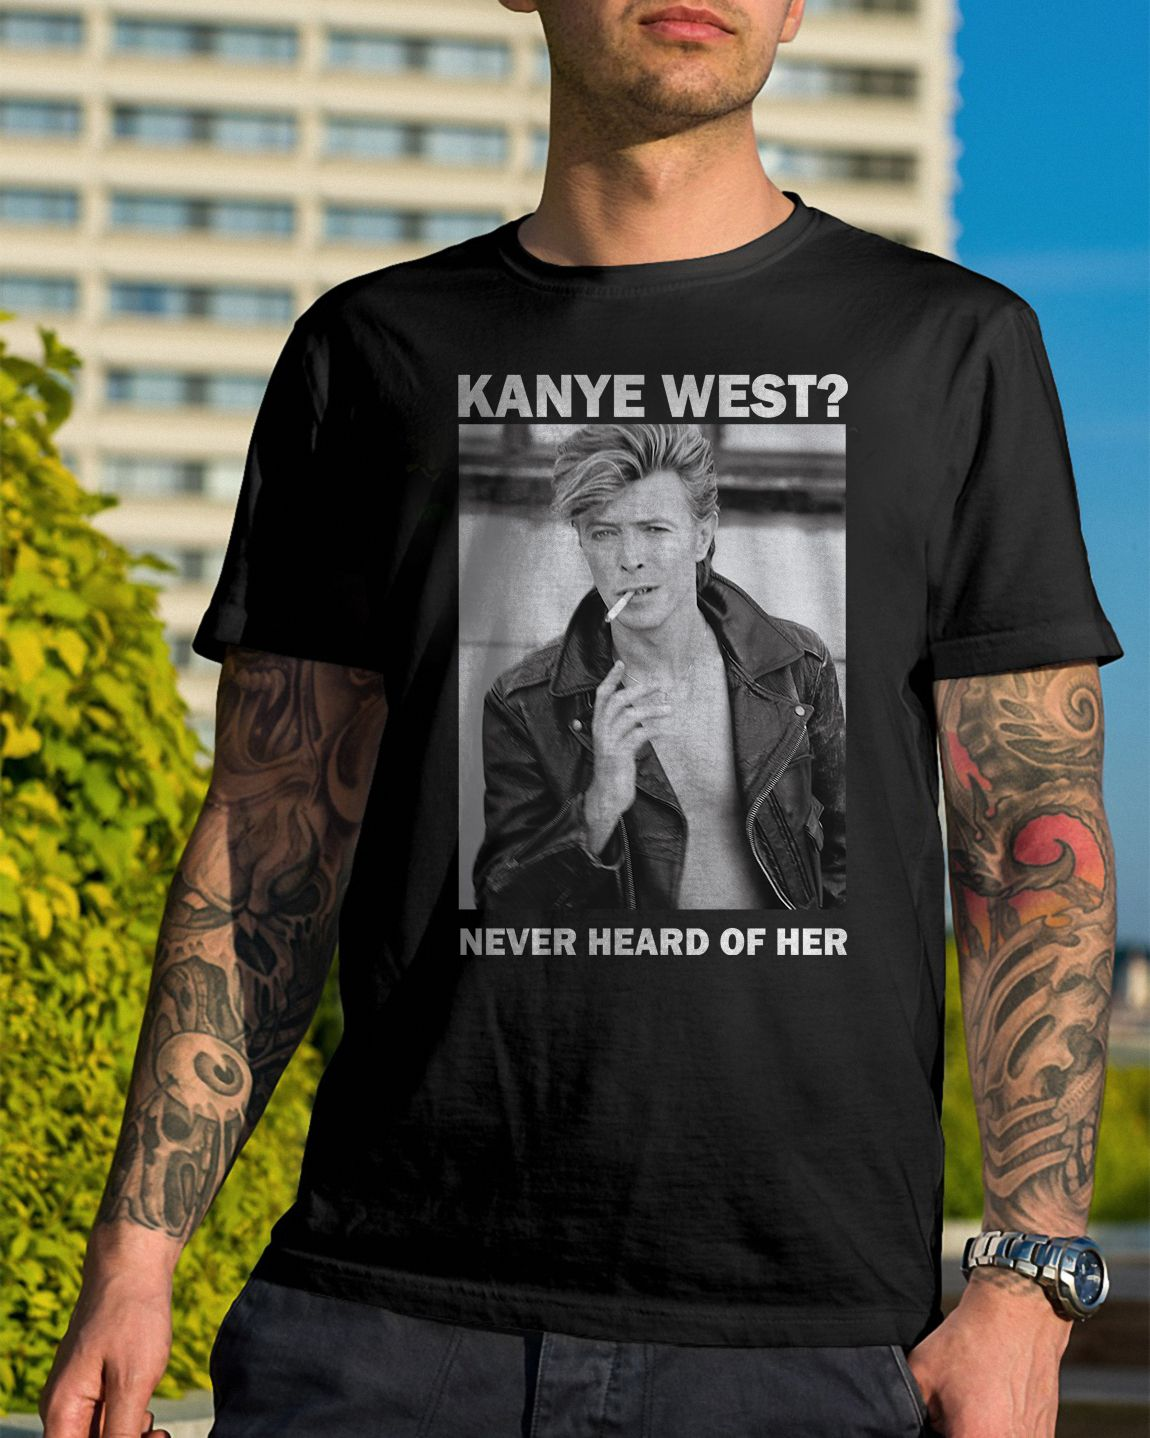 David Bowie Kanye West Never Heard Of Her Shirt Hoodie Sweater Kanye West Kanye David Bowie Shirt